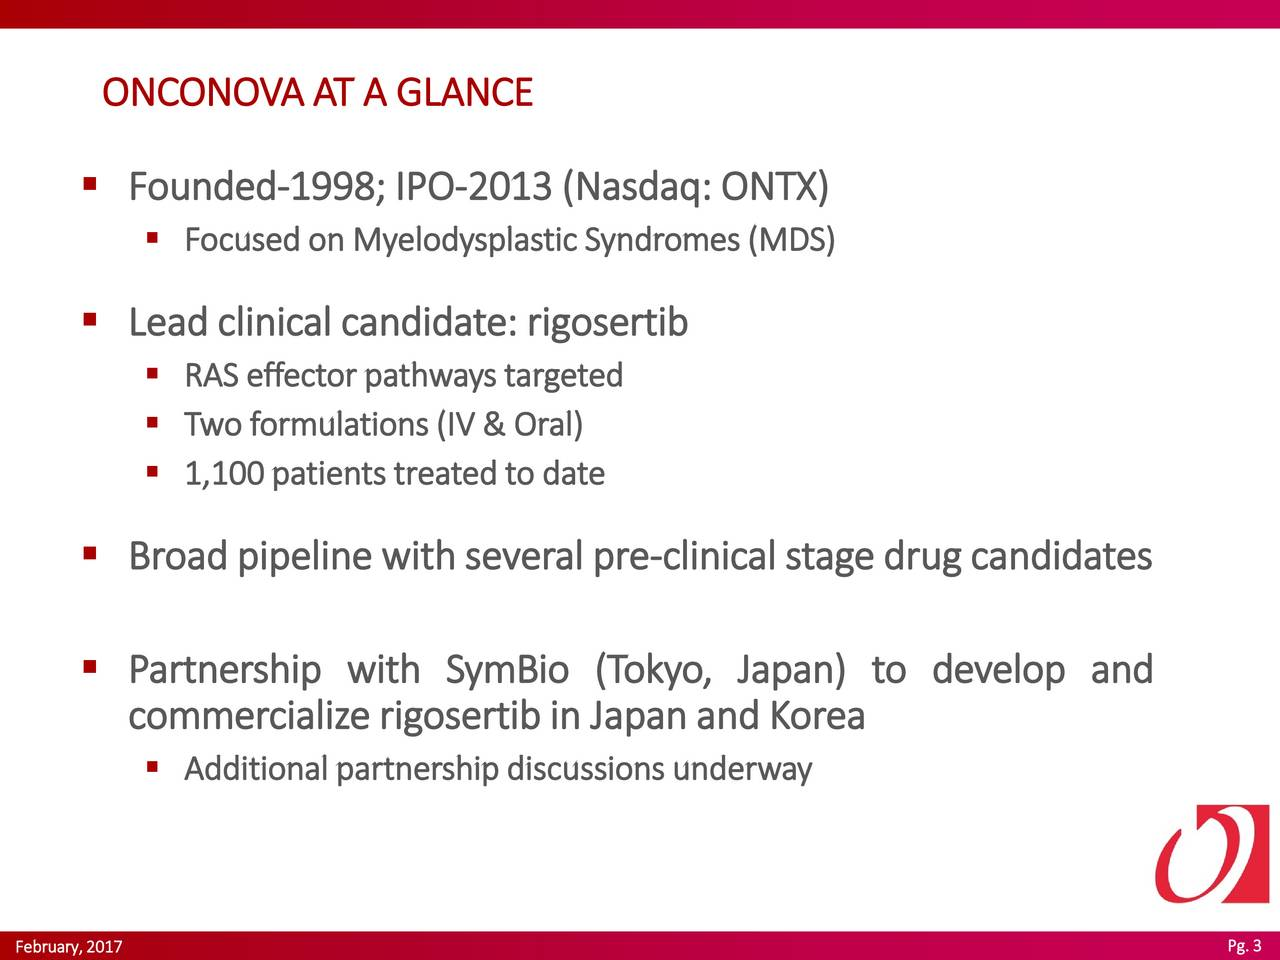 Founded-1998; IPO-2013 (Nasdaq: ONTX) Focused on Myelodysplastic Syndromes (MDS) Lead clinical candidate: rigosertib RAS effector pathways targeted Two formulations (IV & Oral) 1,100 patients treated to date Broadpipelinewithseveralpre-clinicalstagedrugcandidates Partnership with SymBio (Tokyo,Japan) to develop and commercializerigosertibin JapanandKorea Additionalpartnershipdiscussionsunderway